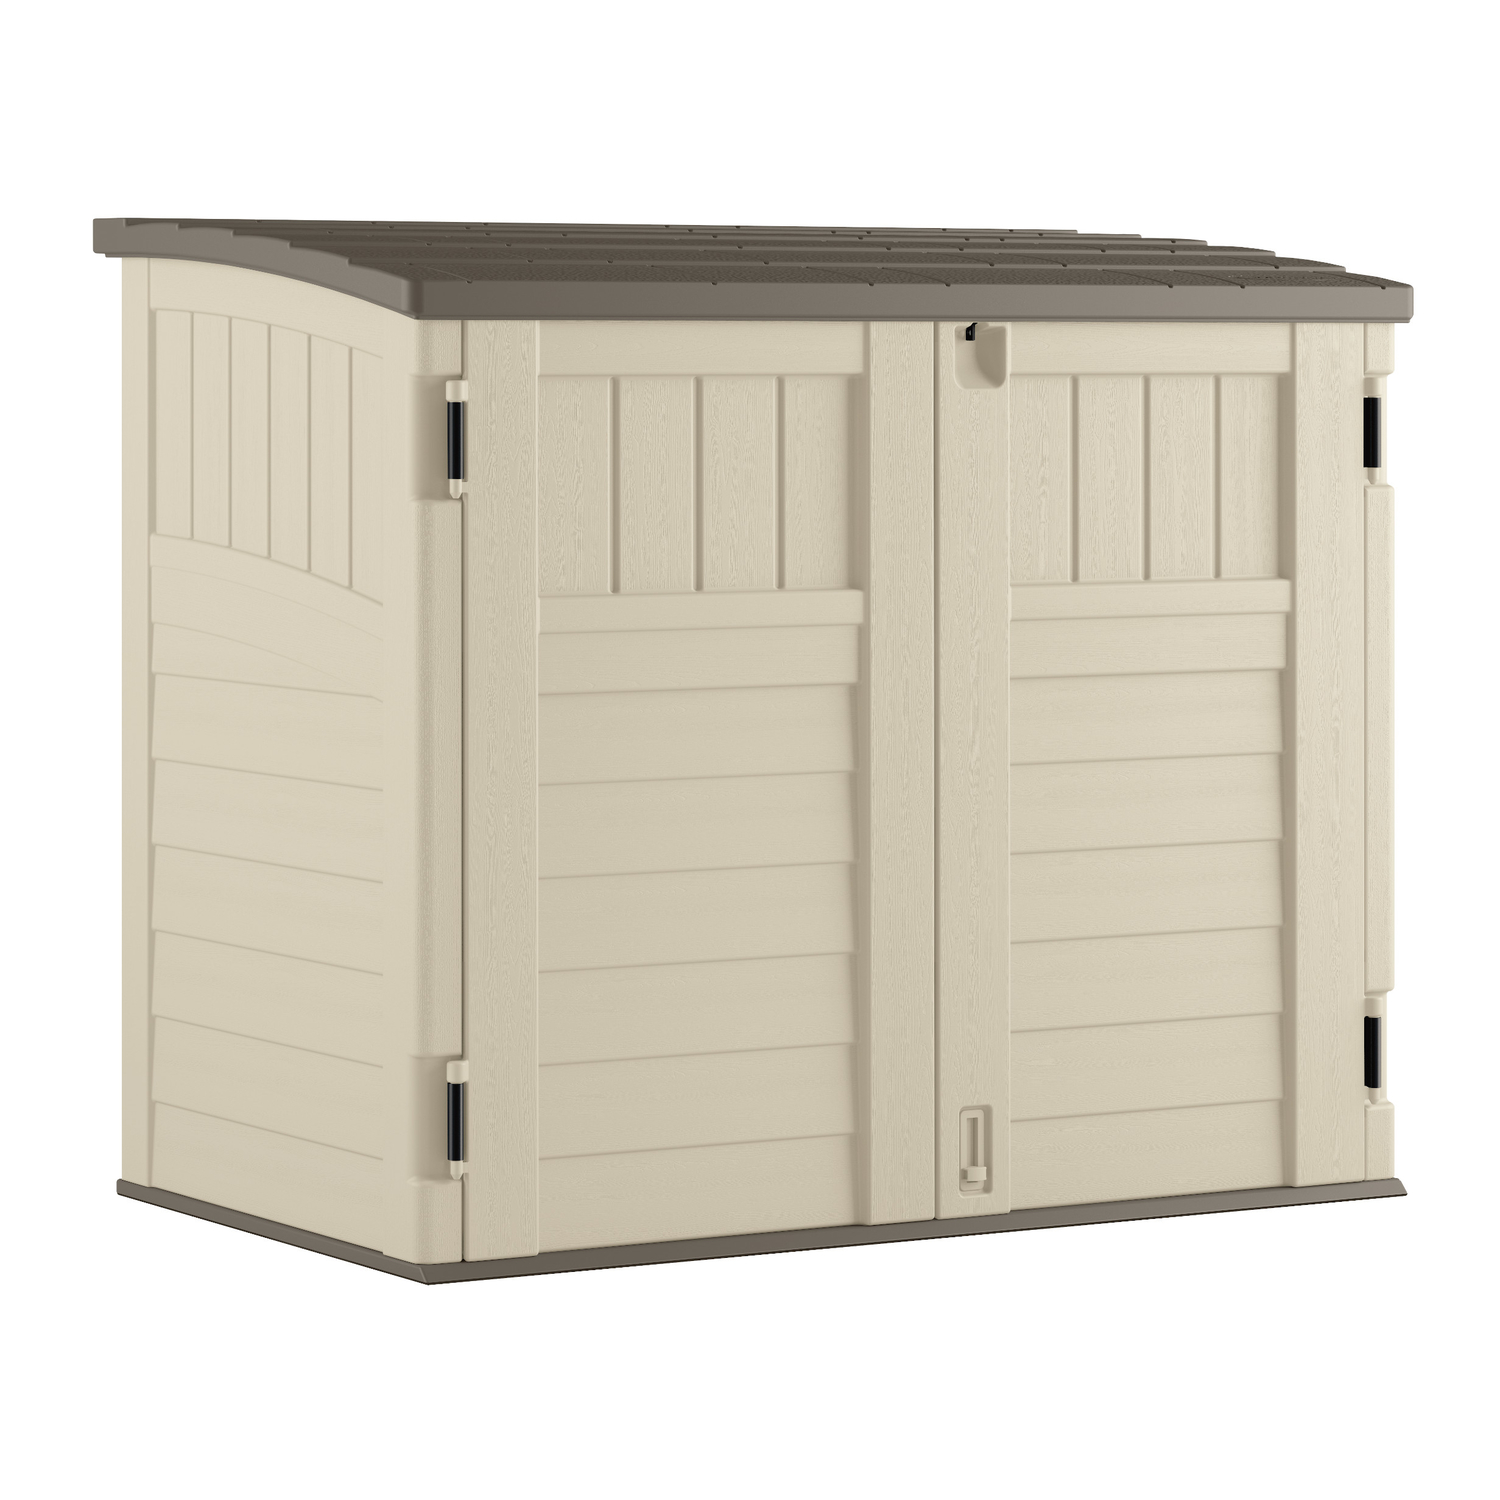 Suncast 45-1/2 in. H x 53 in. W x 32  sc 1 st  Ace Hardware & Storage Sheds u0026 Deck Boxes at Ace Hardware